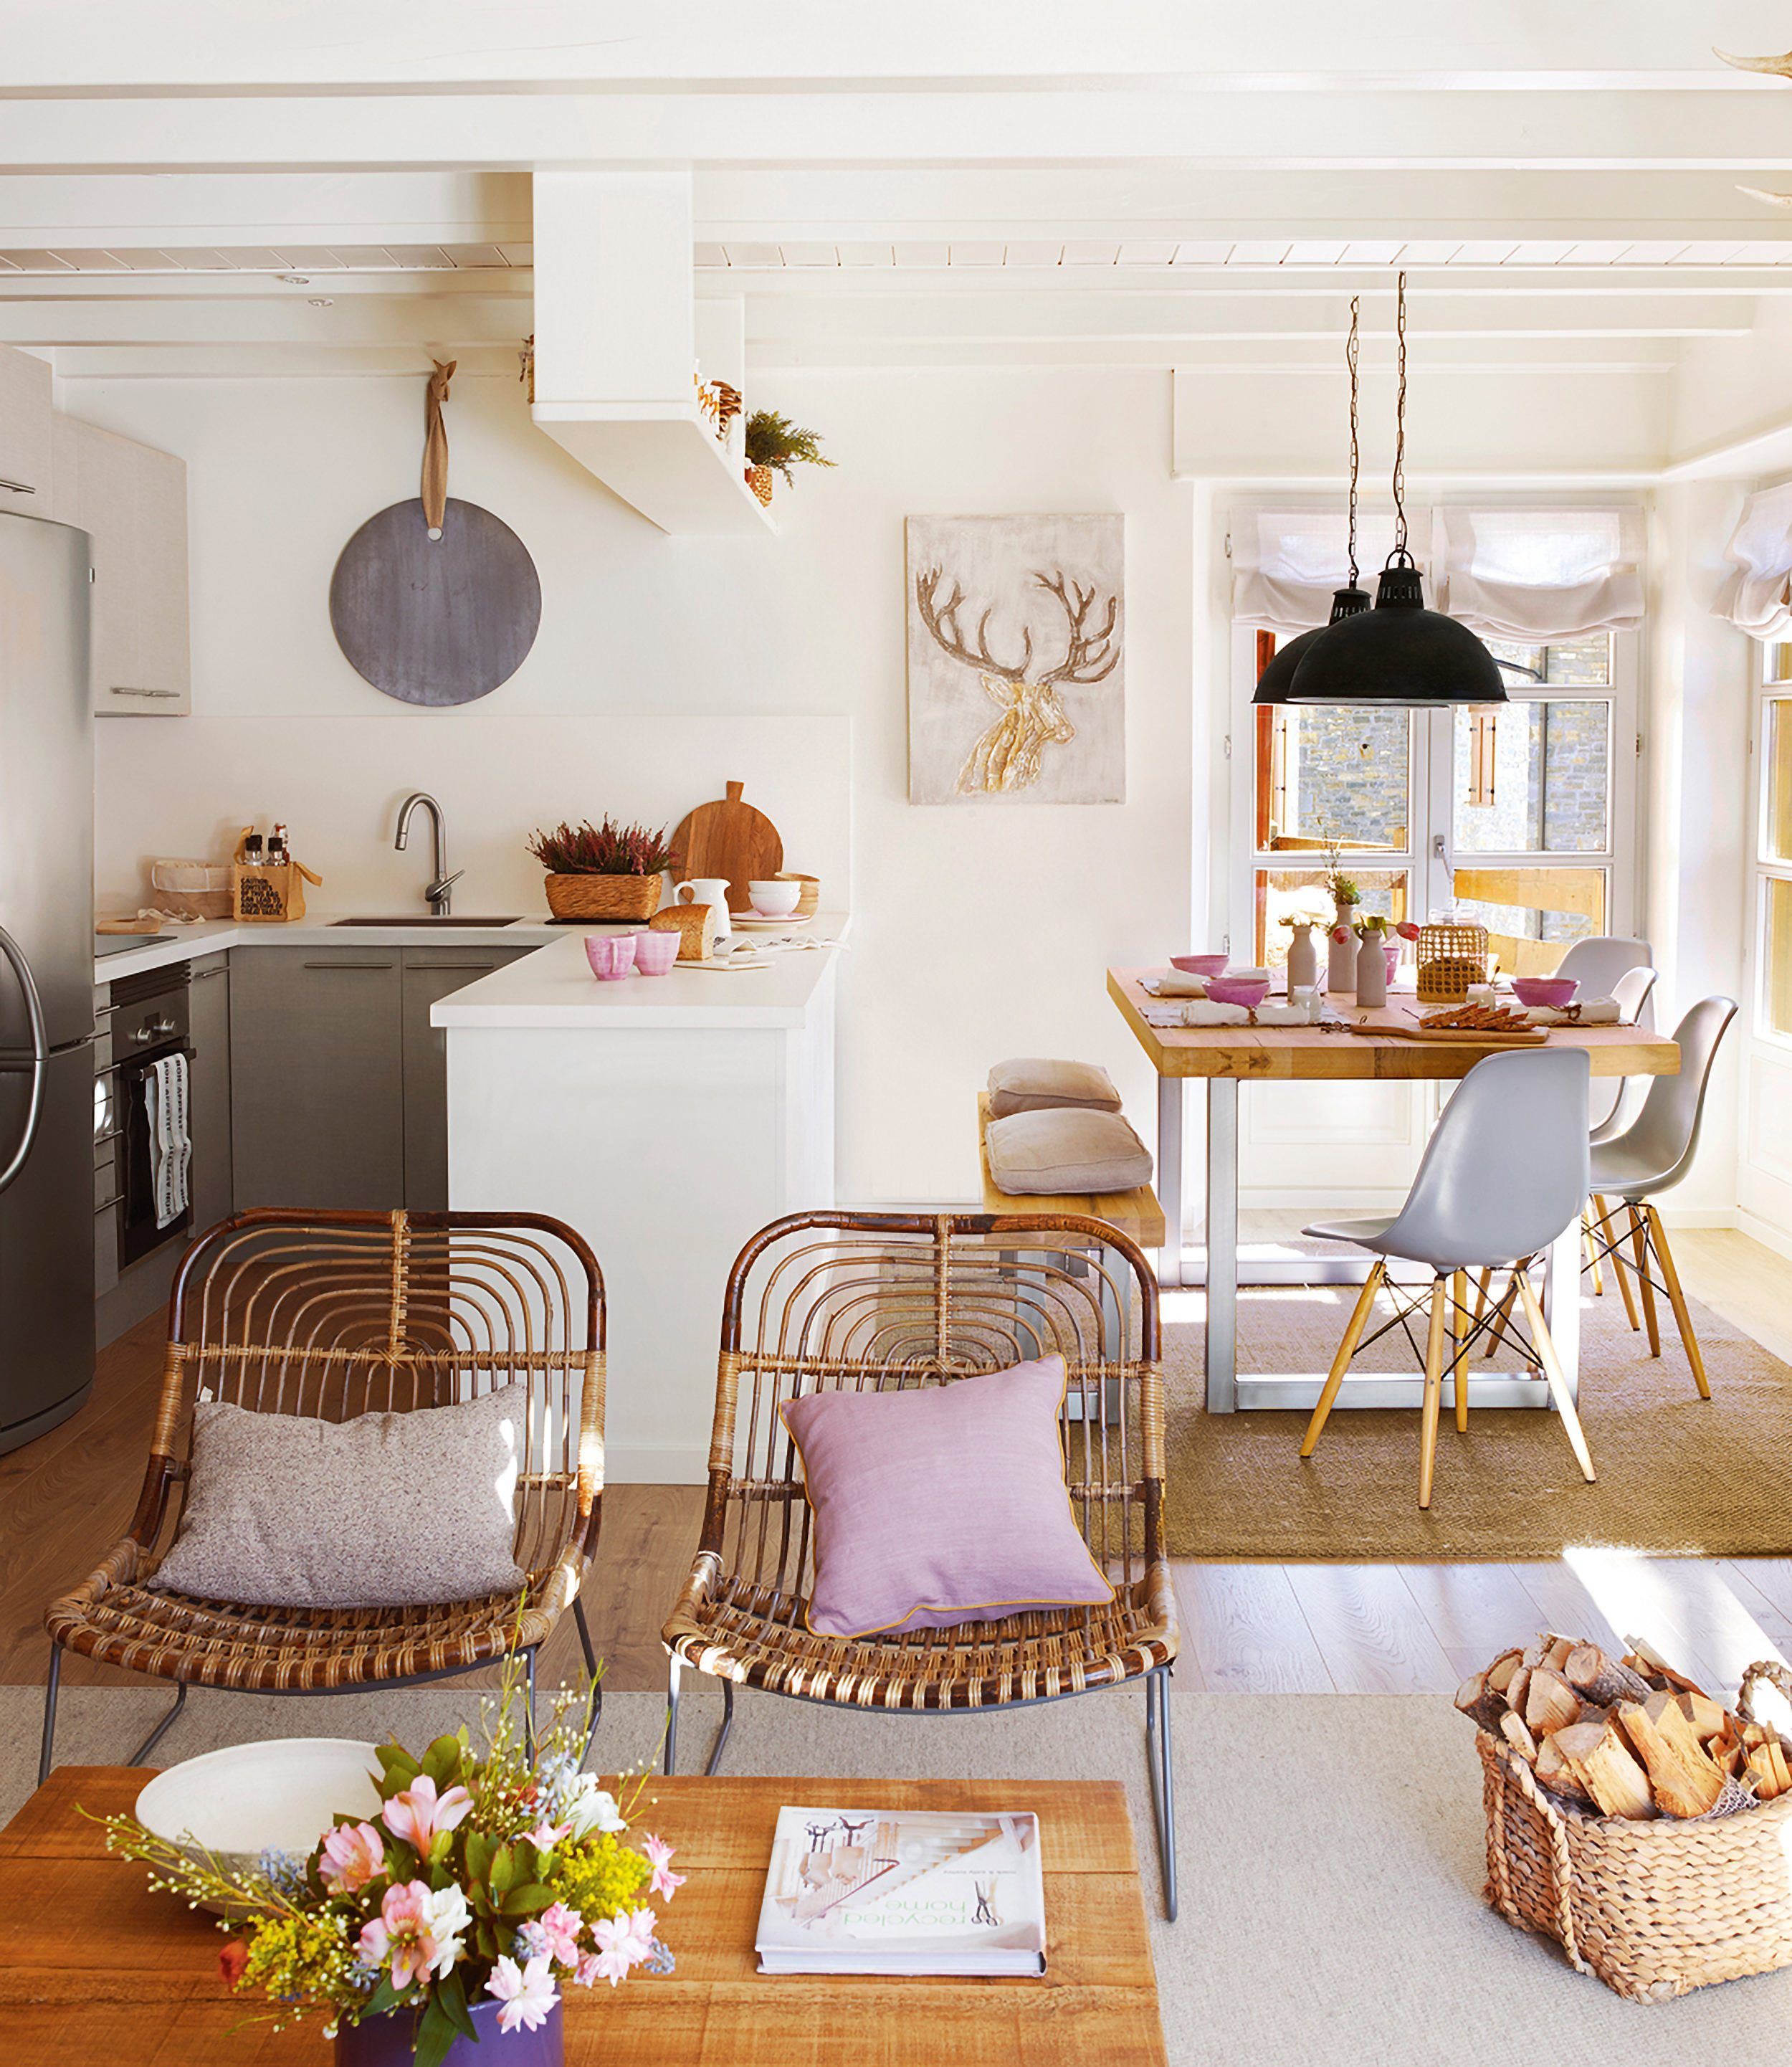 We Need to Talk About Lilac as a 2018 Home Decor Trend